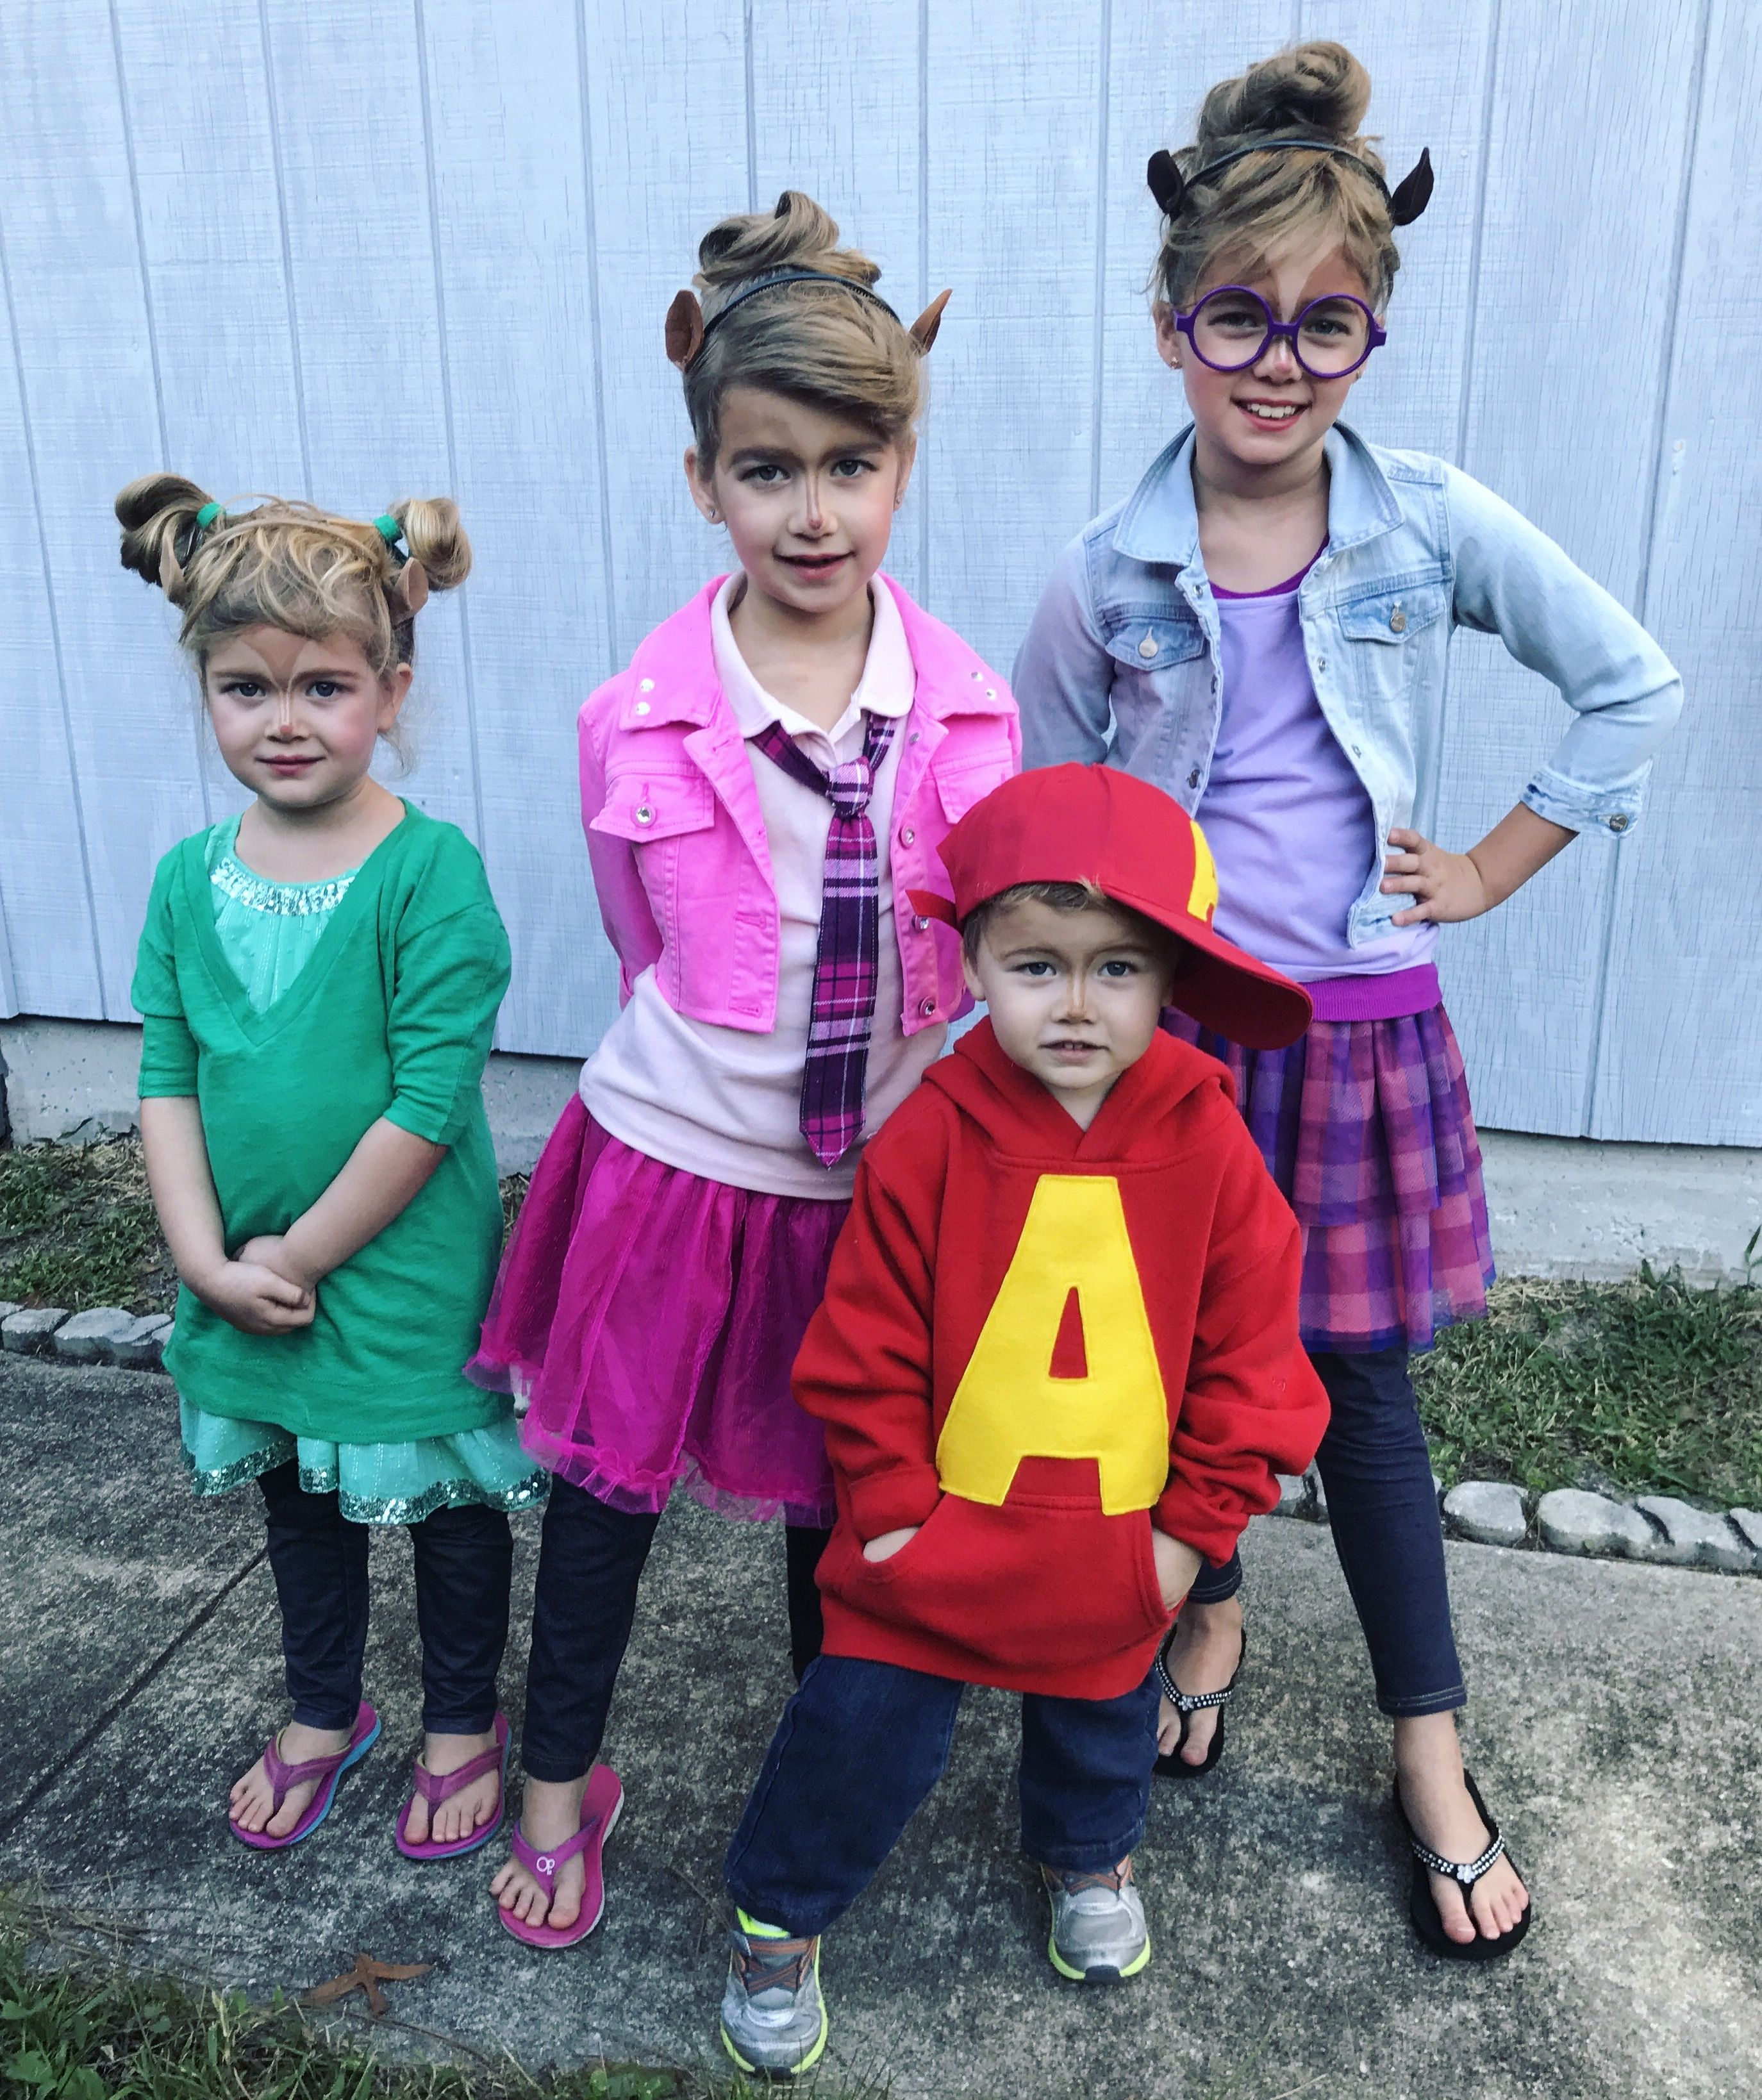 Alvin And The Chipmunks And Chipettes Costume Themed Halloween Costumes Cute Halloween Costumes Toddler Halloween Costumes